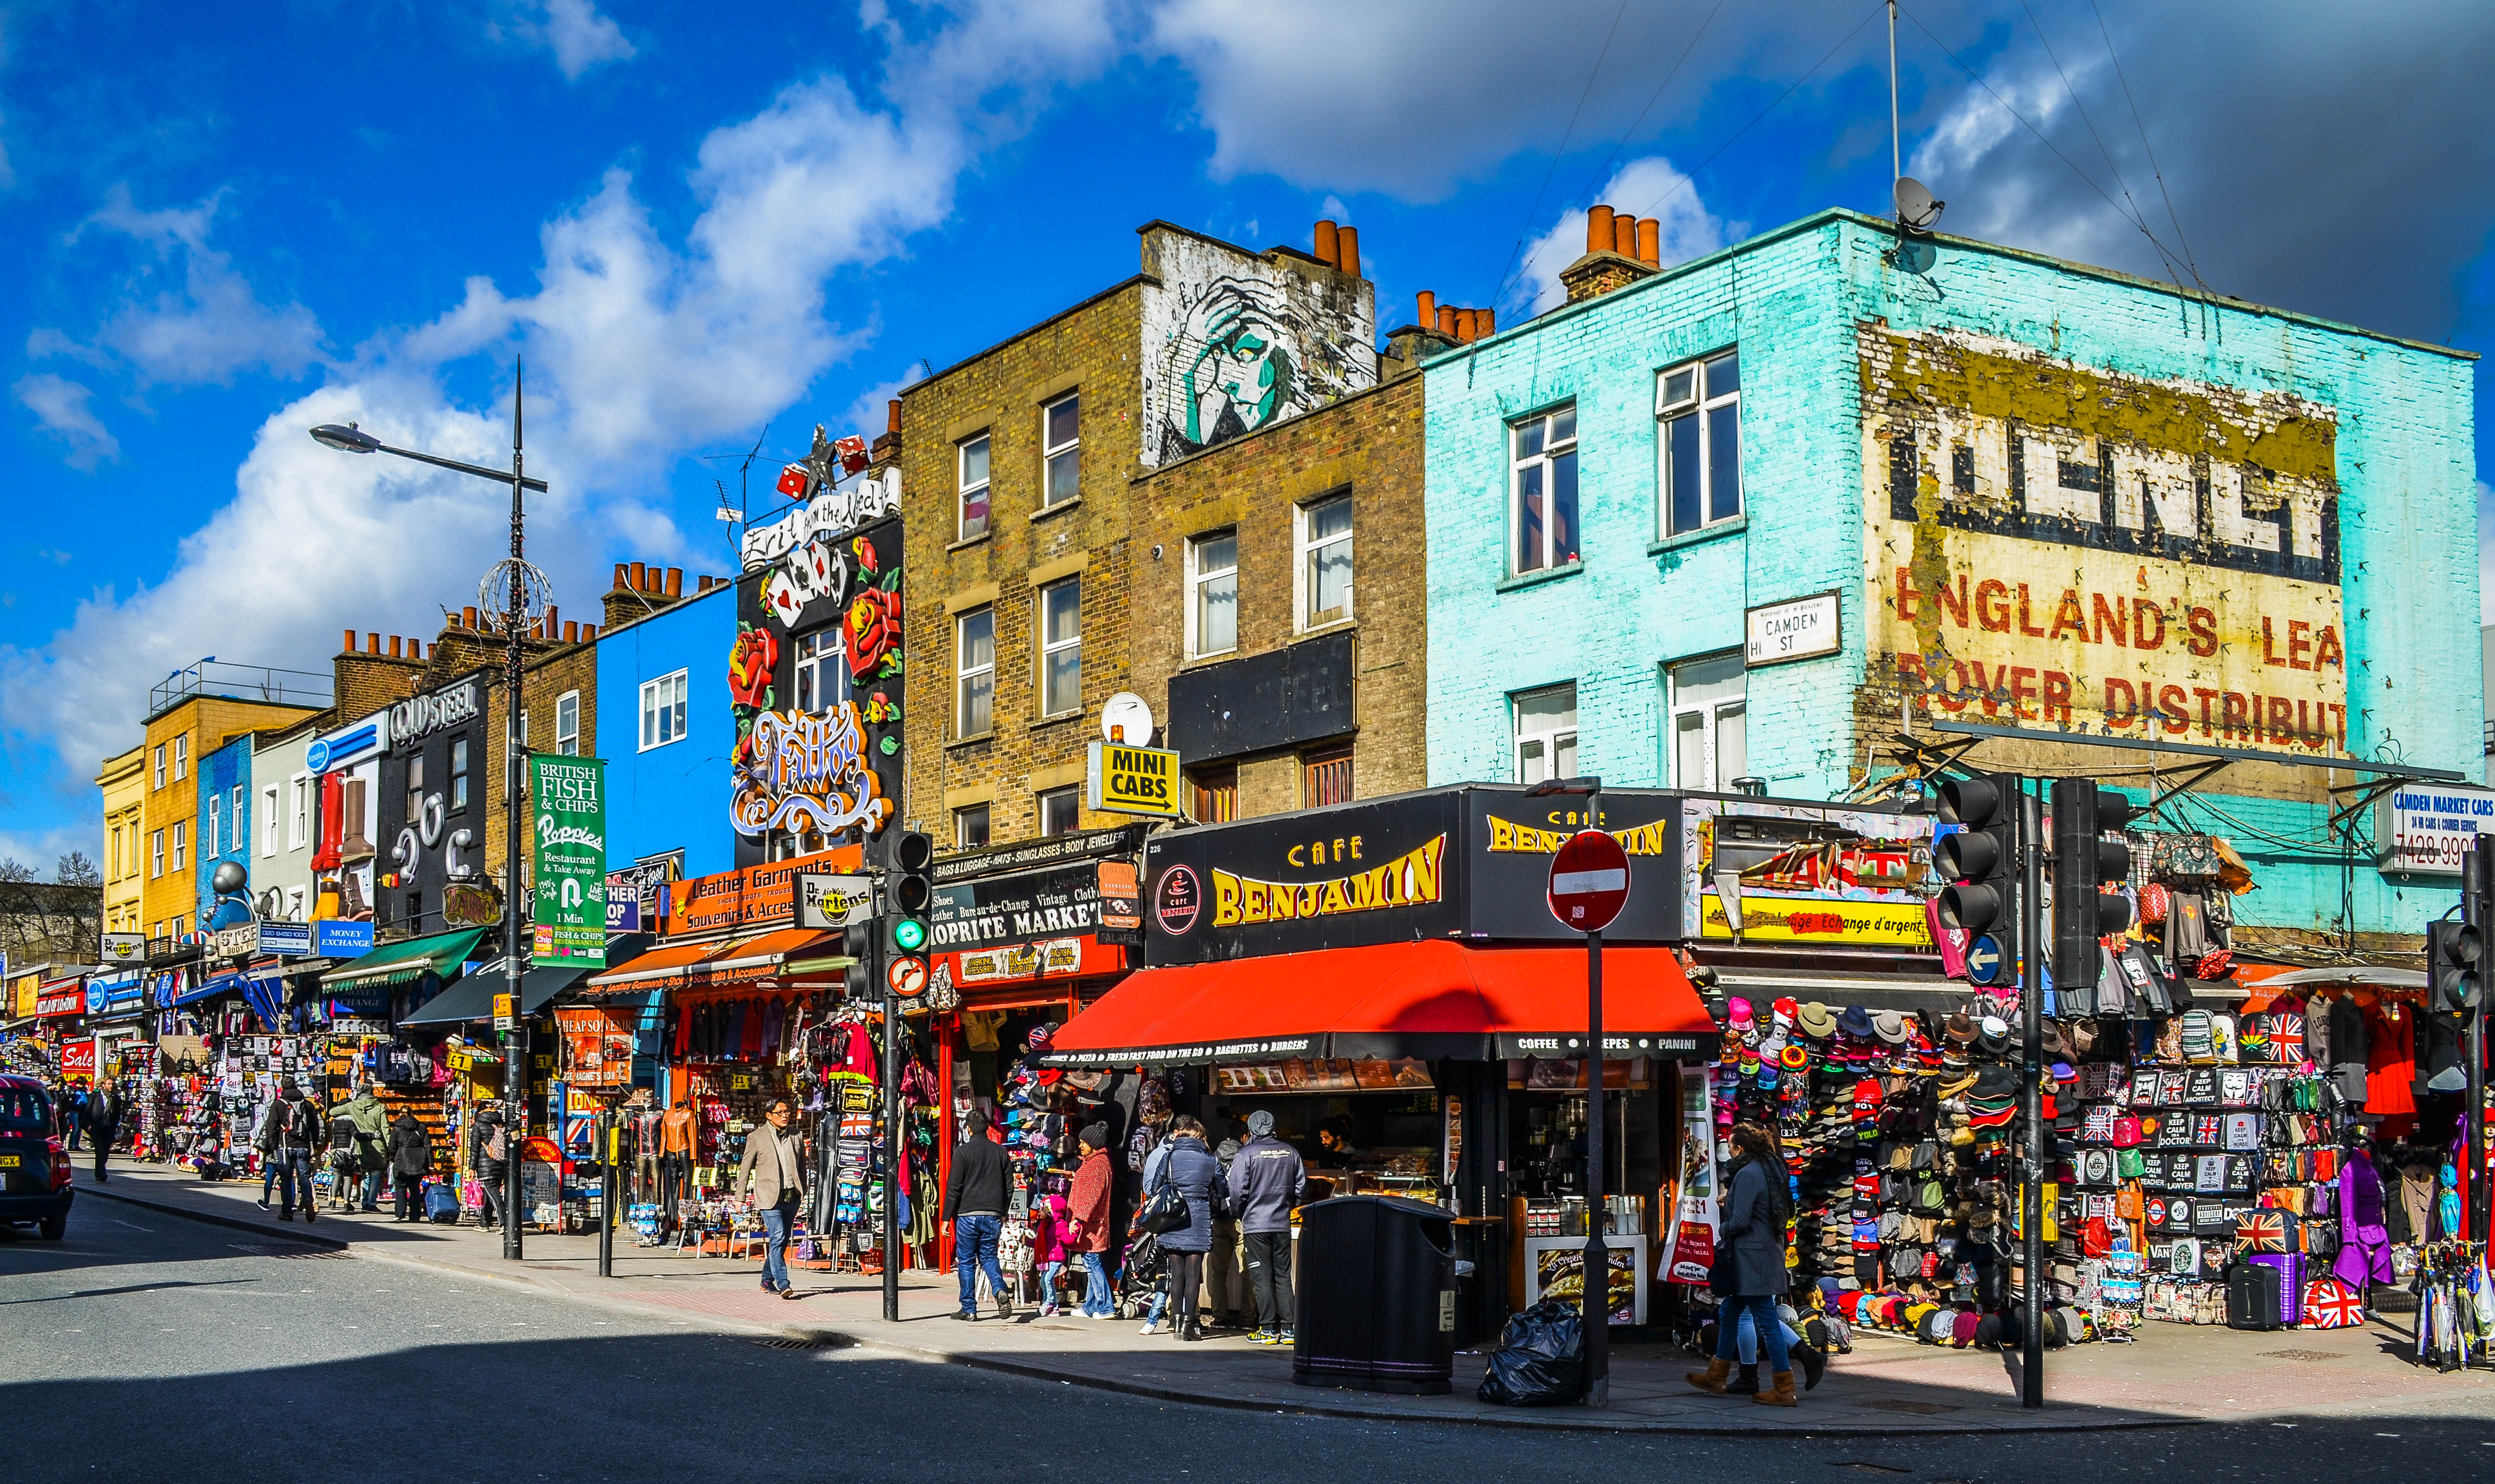 The least affordable location for first-time buyers in Greater London was Camden.